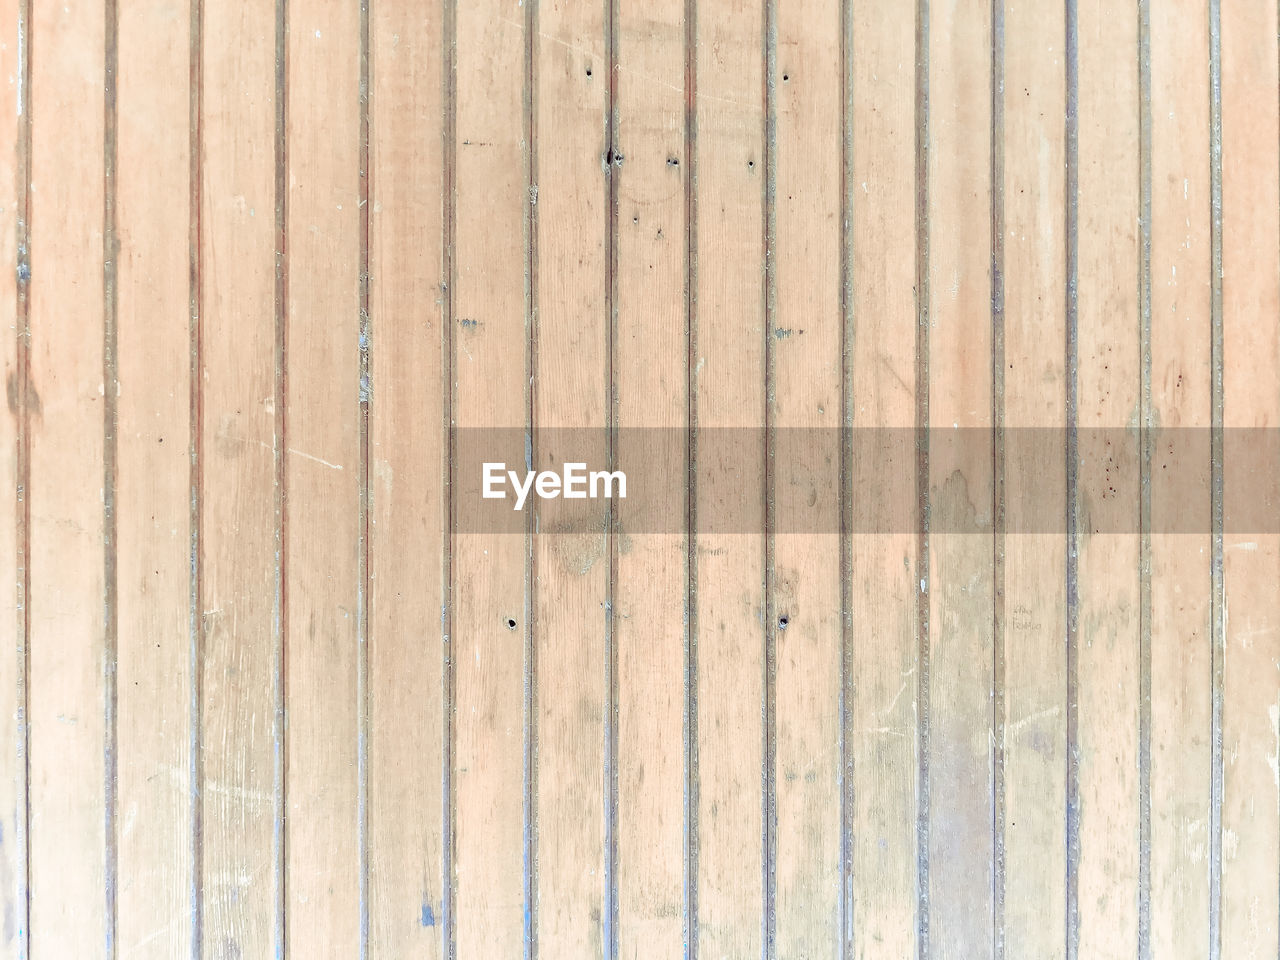 pattern, backgrounds, textured, striped, old, wood - material, timber, old-fashioned, weathered, hardwood, obsolete, retro styled, wood grain, no people, wood paneling, close-up, nature, outdoors, day